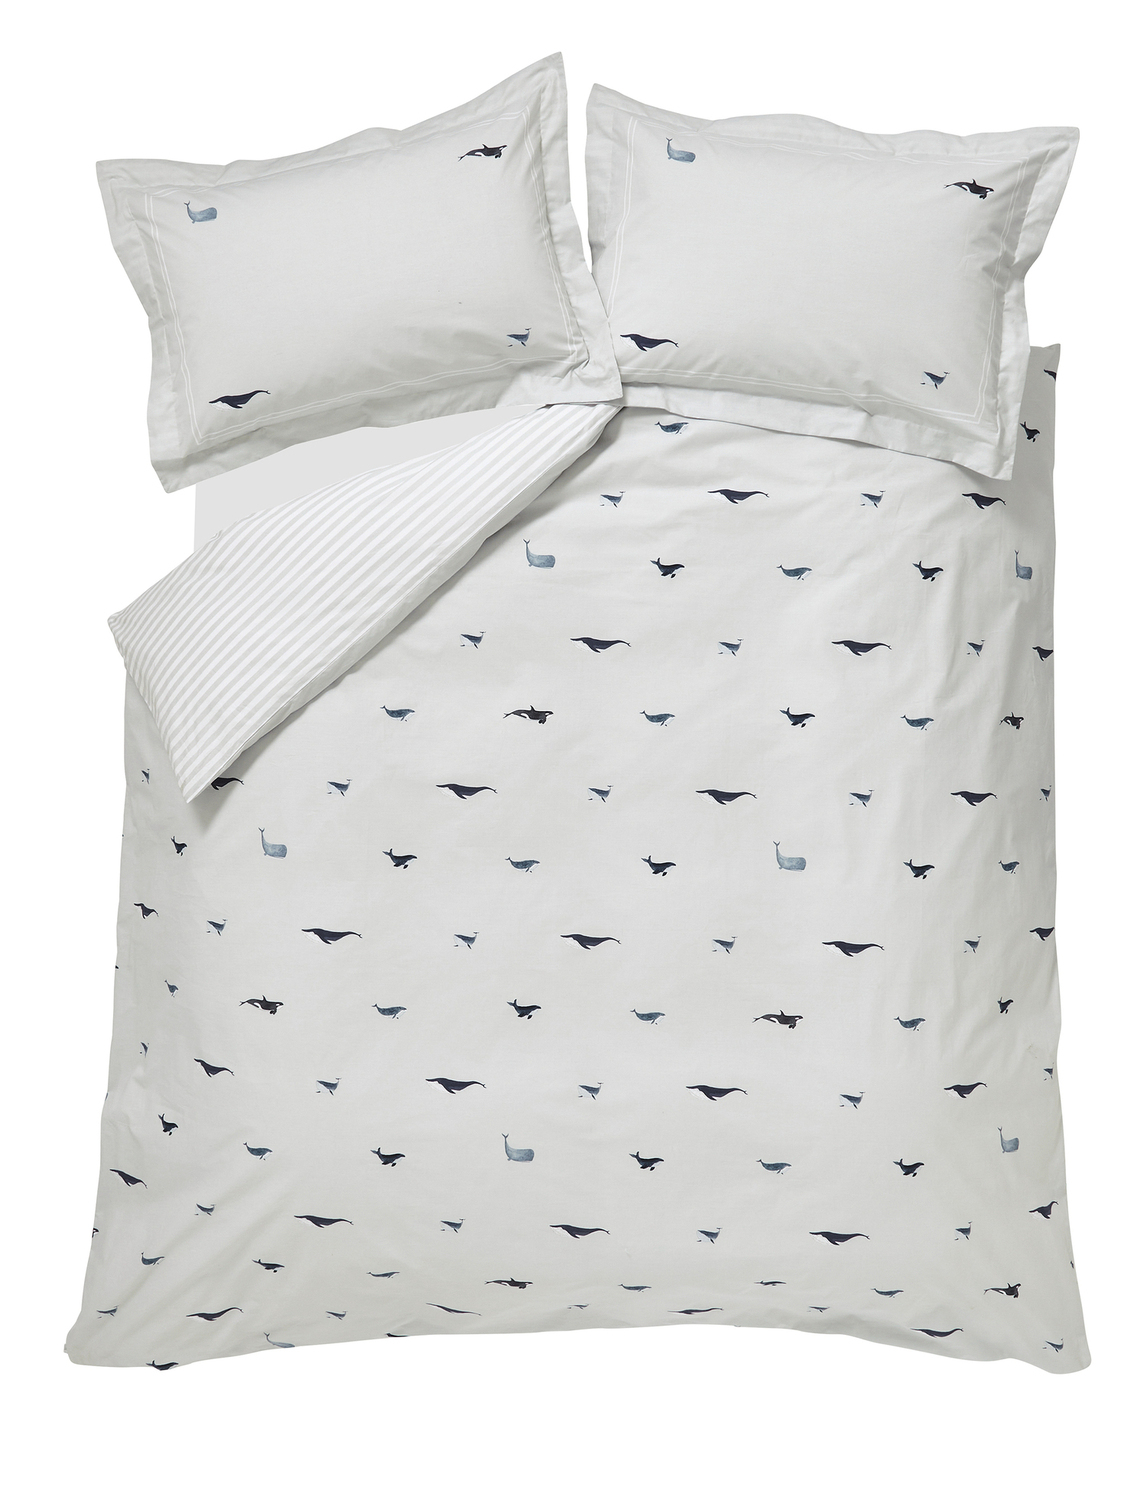 Sophie Allport Whale Oxford Pillowcase Pair